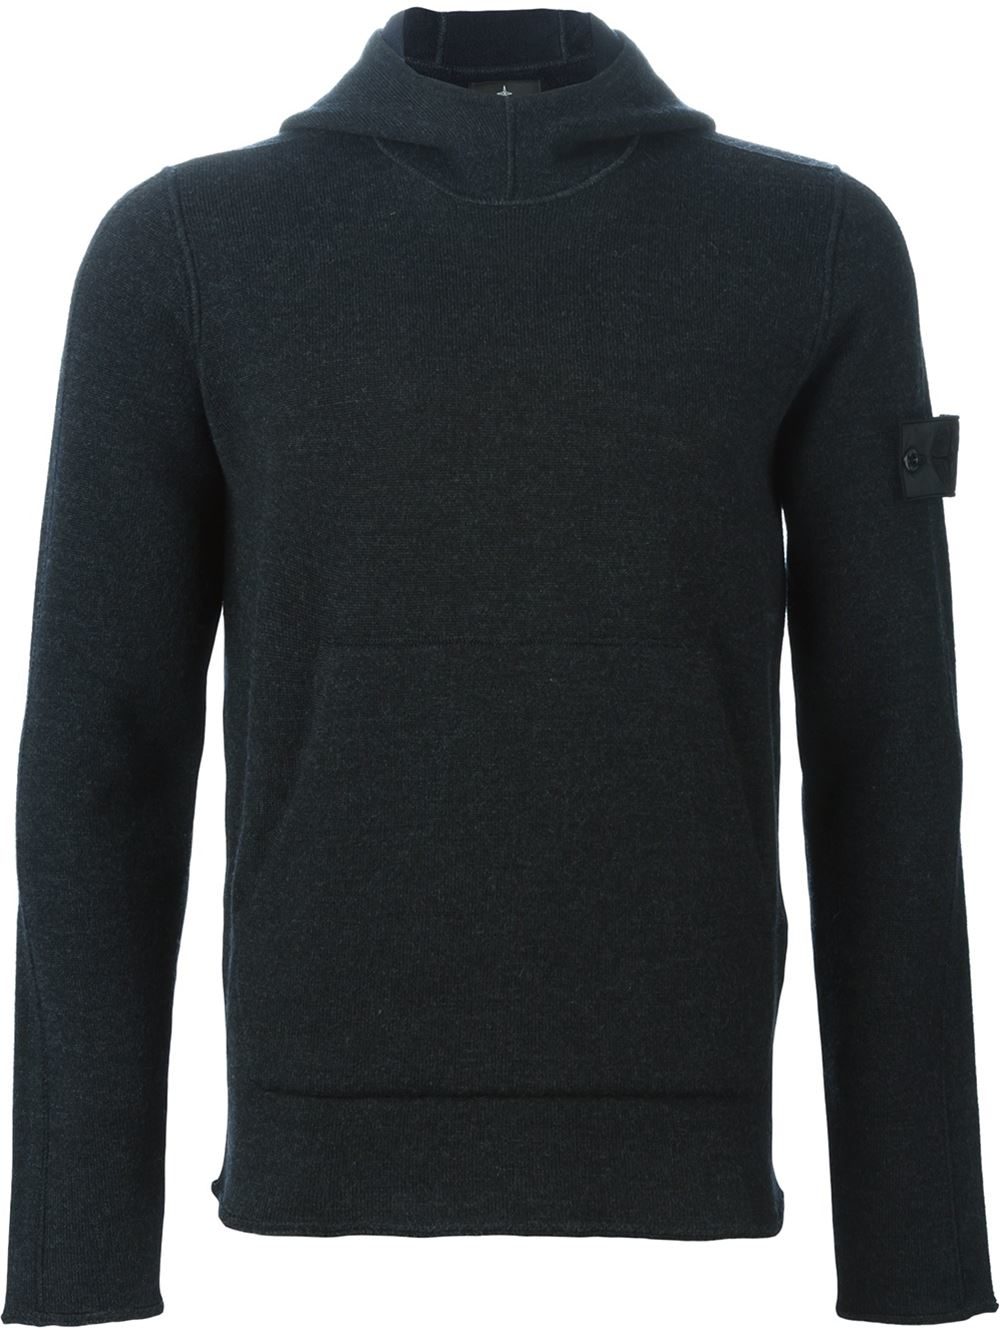 stone island hooded sweater in gray for men grey lyst. Black Bedroom Furniture Sets. Home Design Ideas